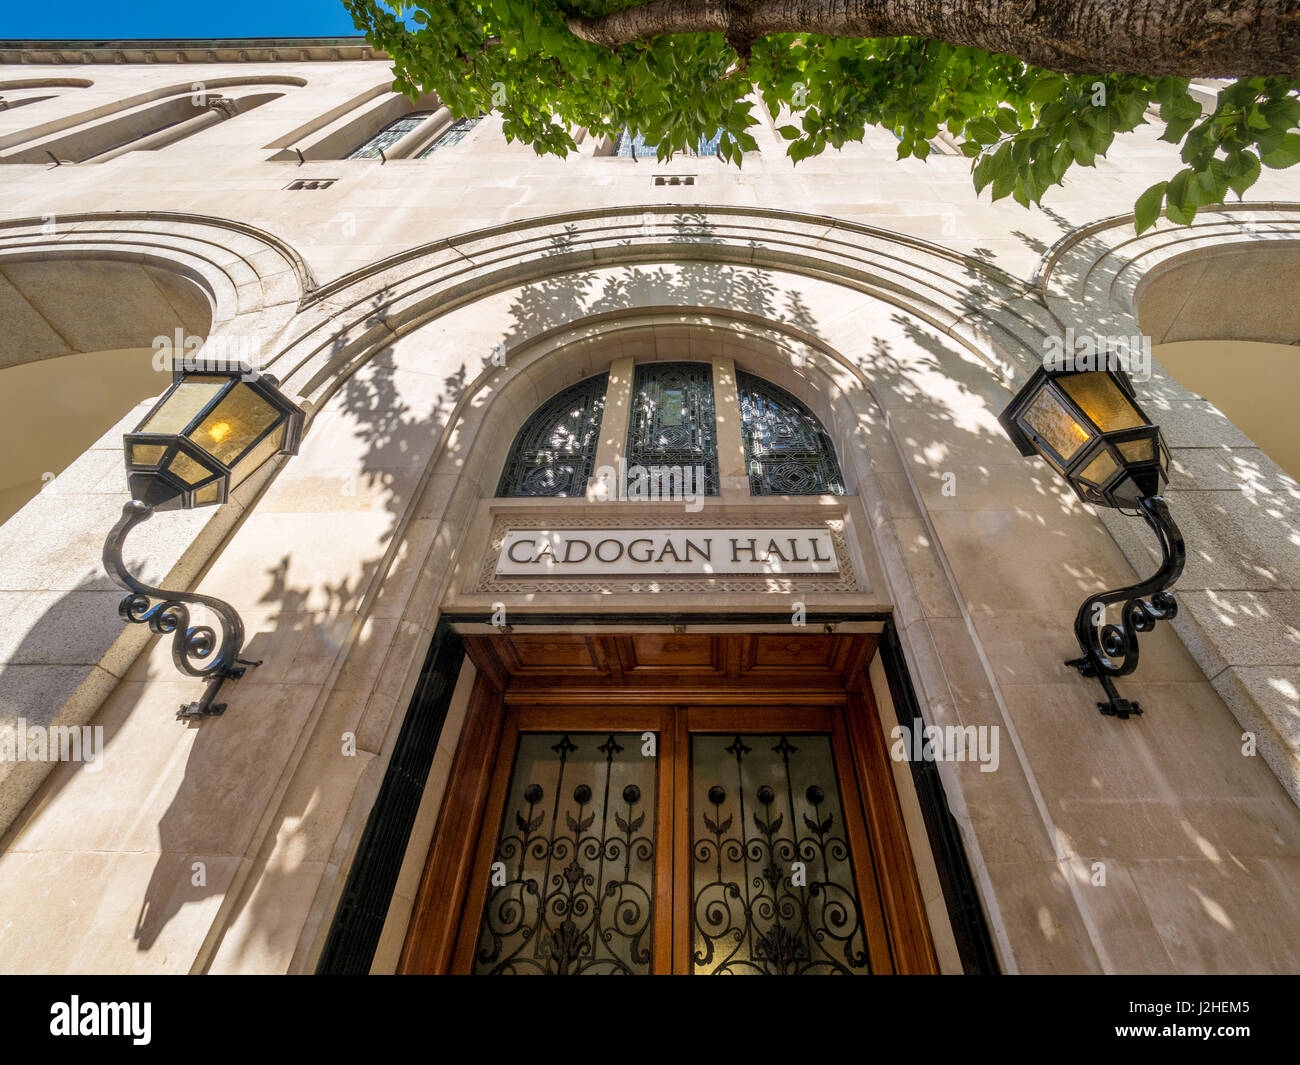 Cadogan Gall, London, UK. - Stock Image